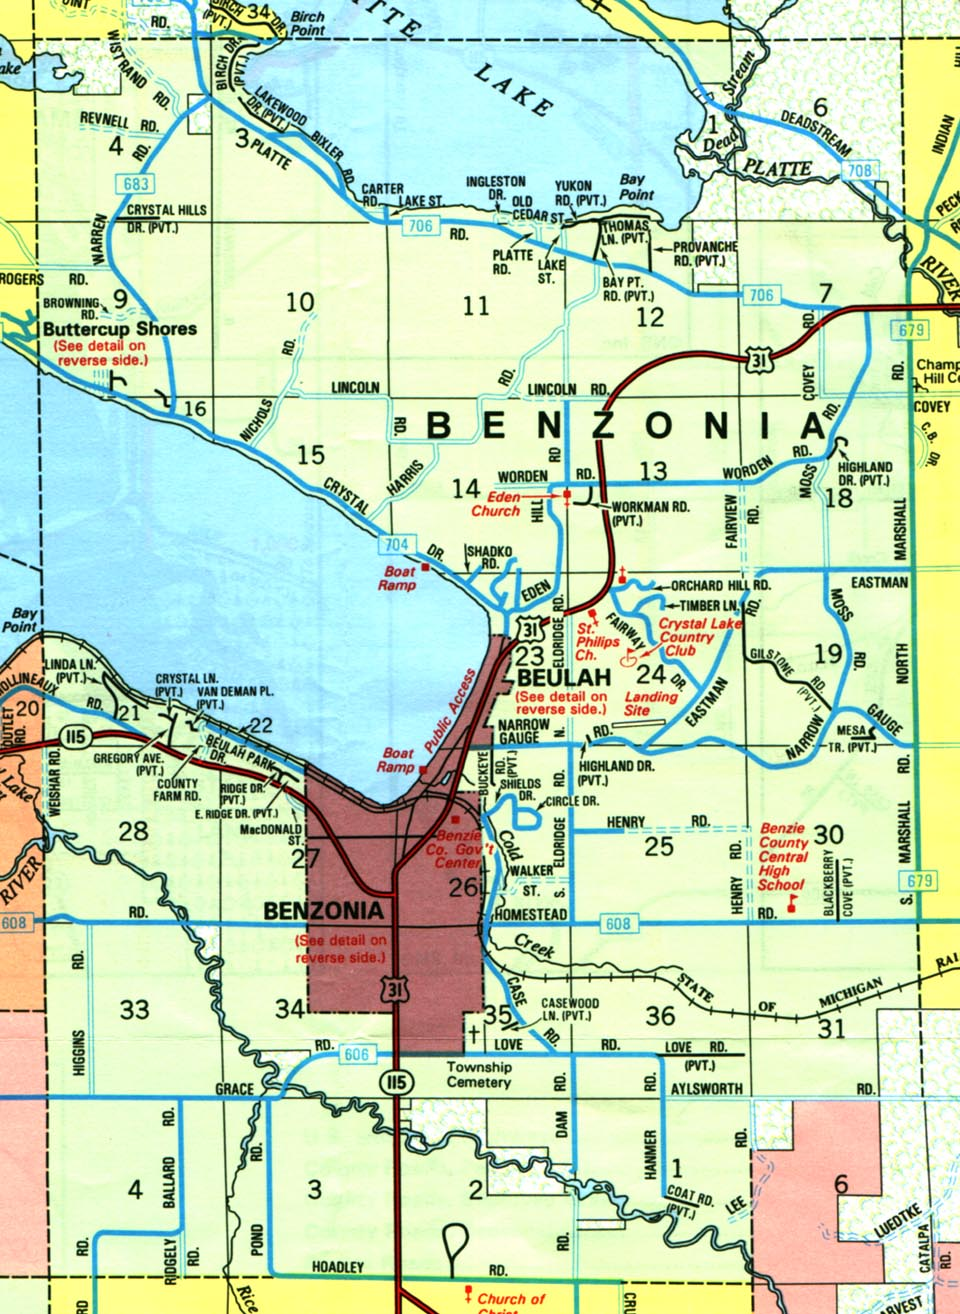 benzie county Crystal clear michigan benzie county is located in northwest lower michigan, bordering lake michigan benzie county boasts over 100 lakes, several square miles of state forests, and miles of pristine rivers.